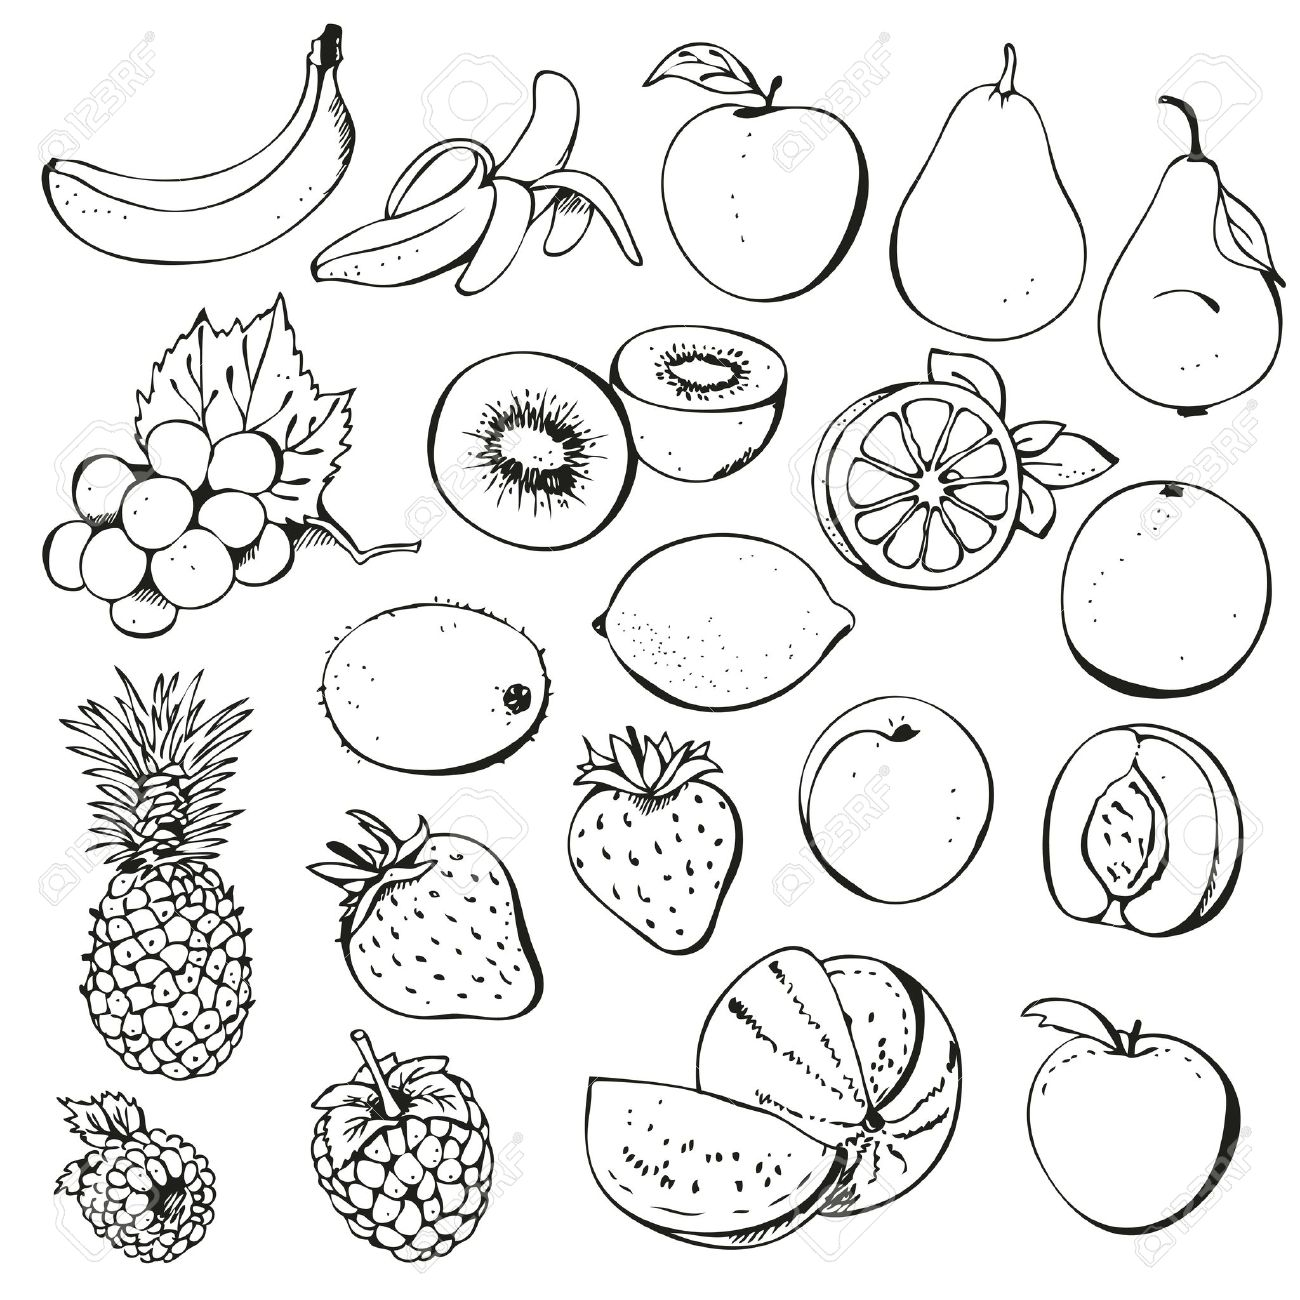 Clipart outline fruits.